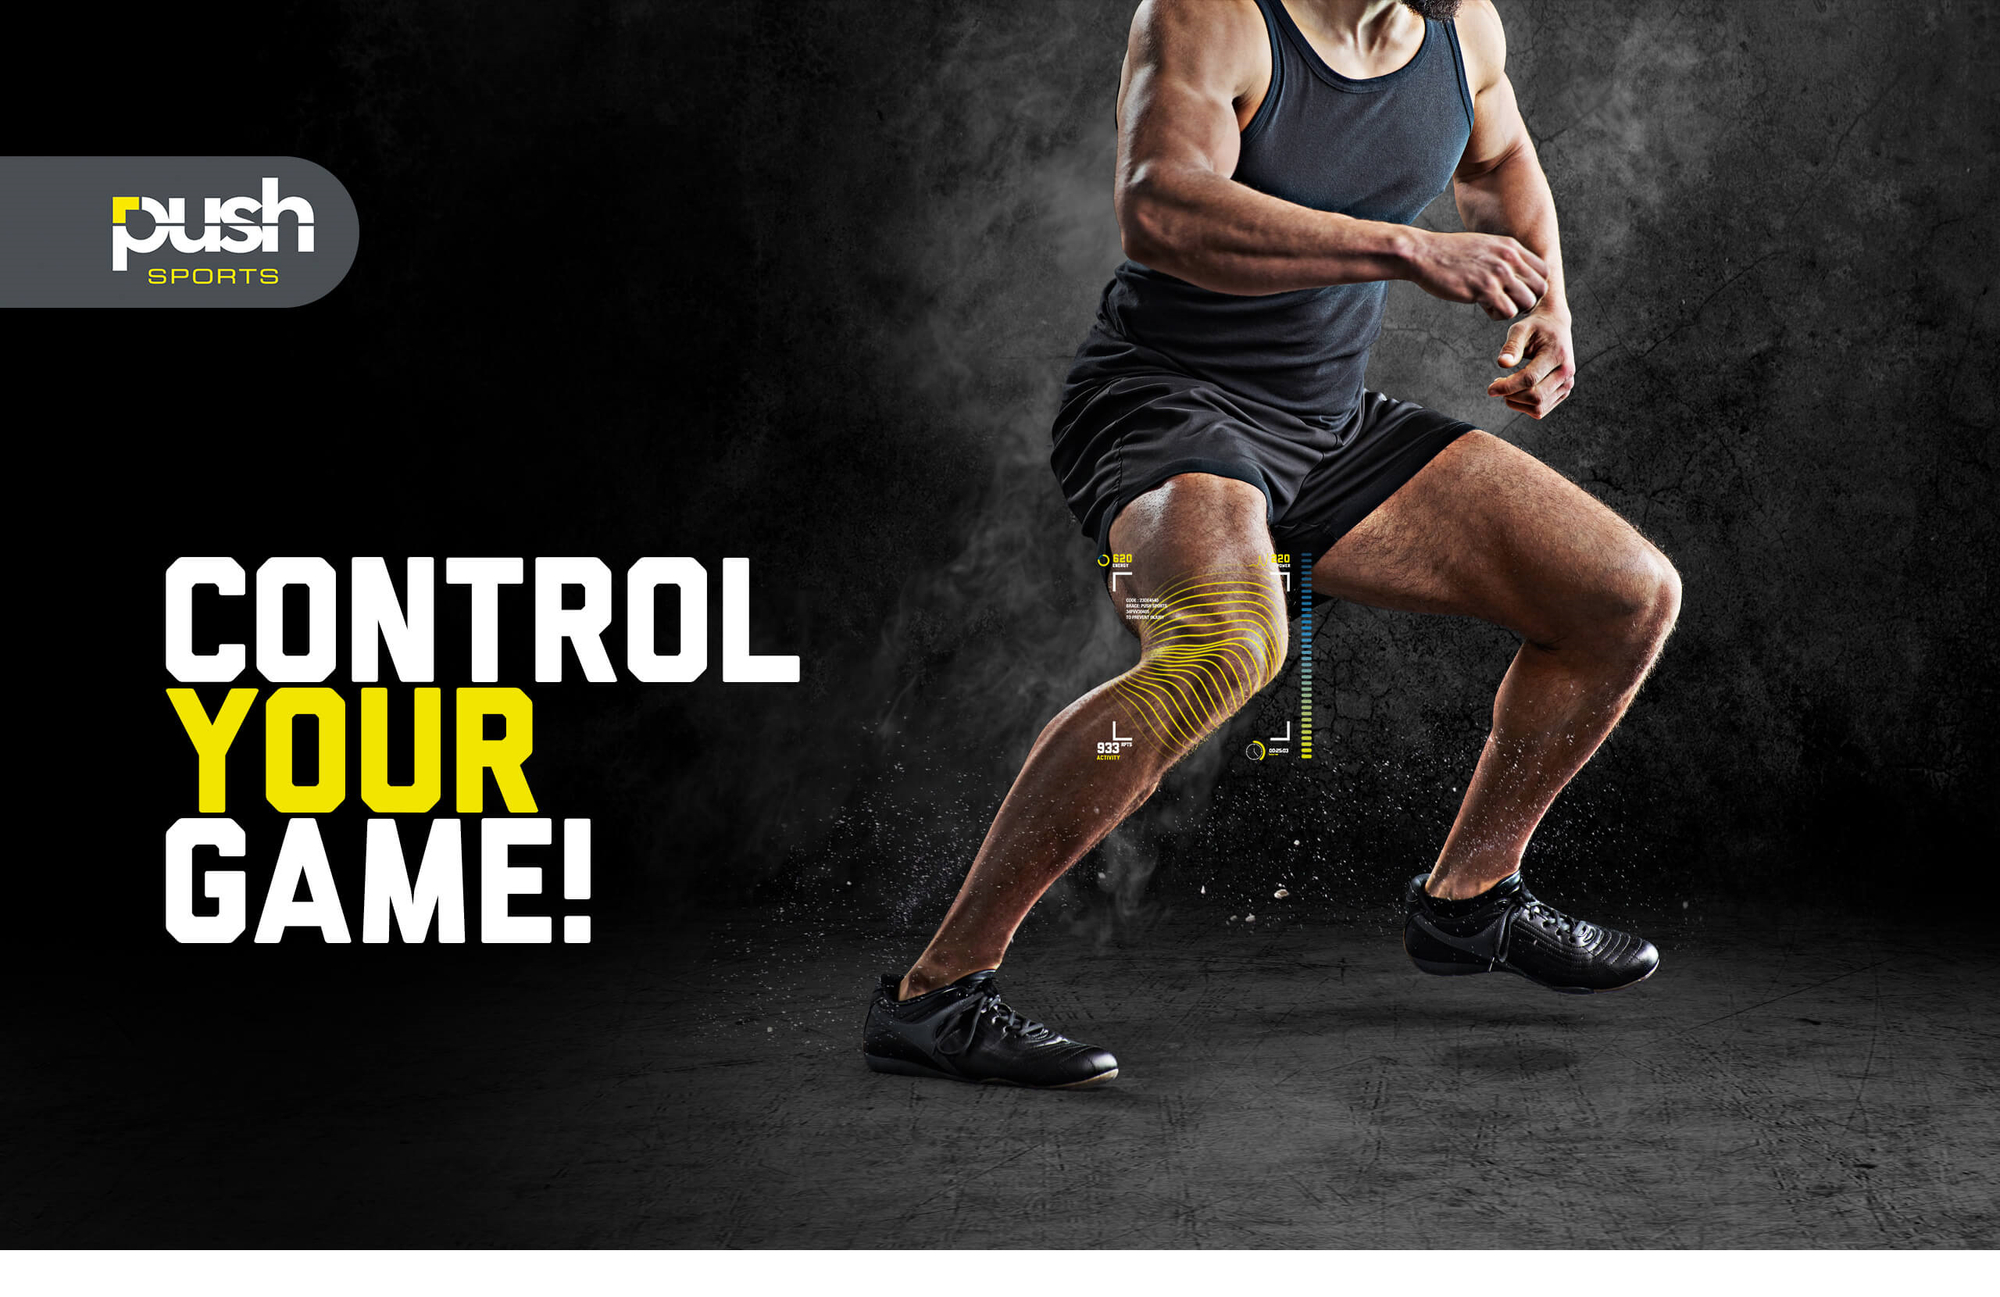 Control your game!